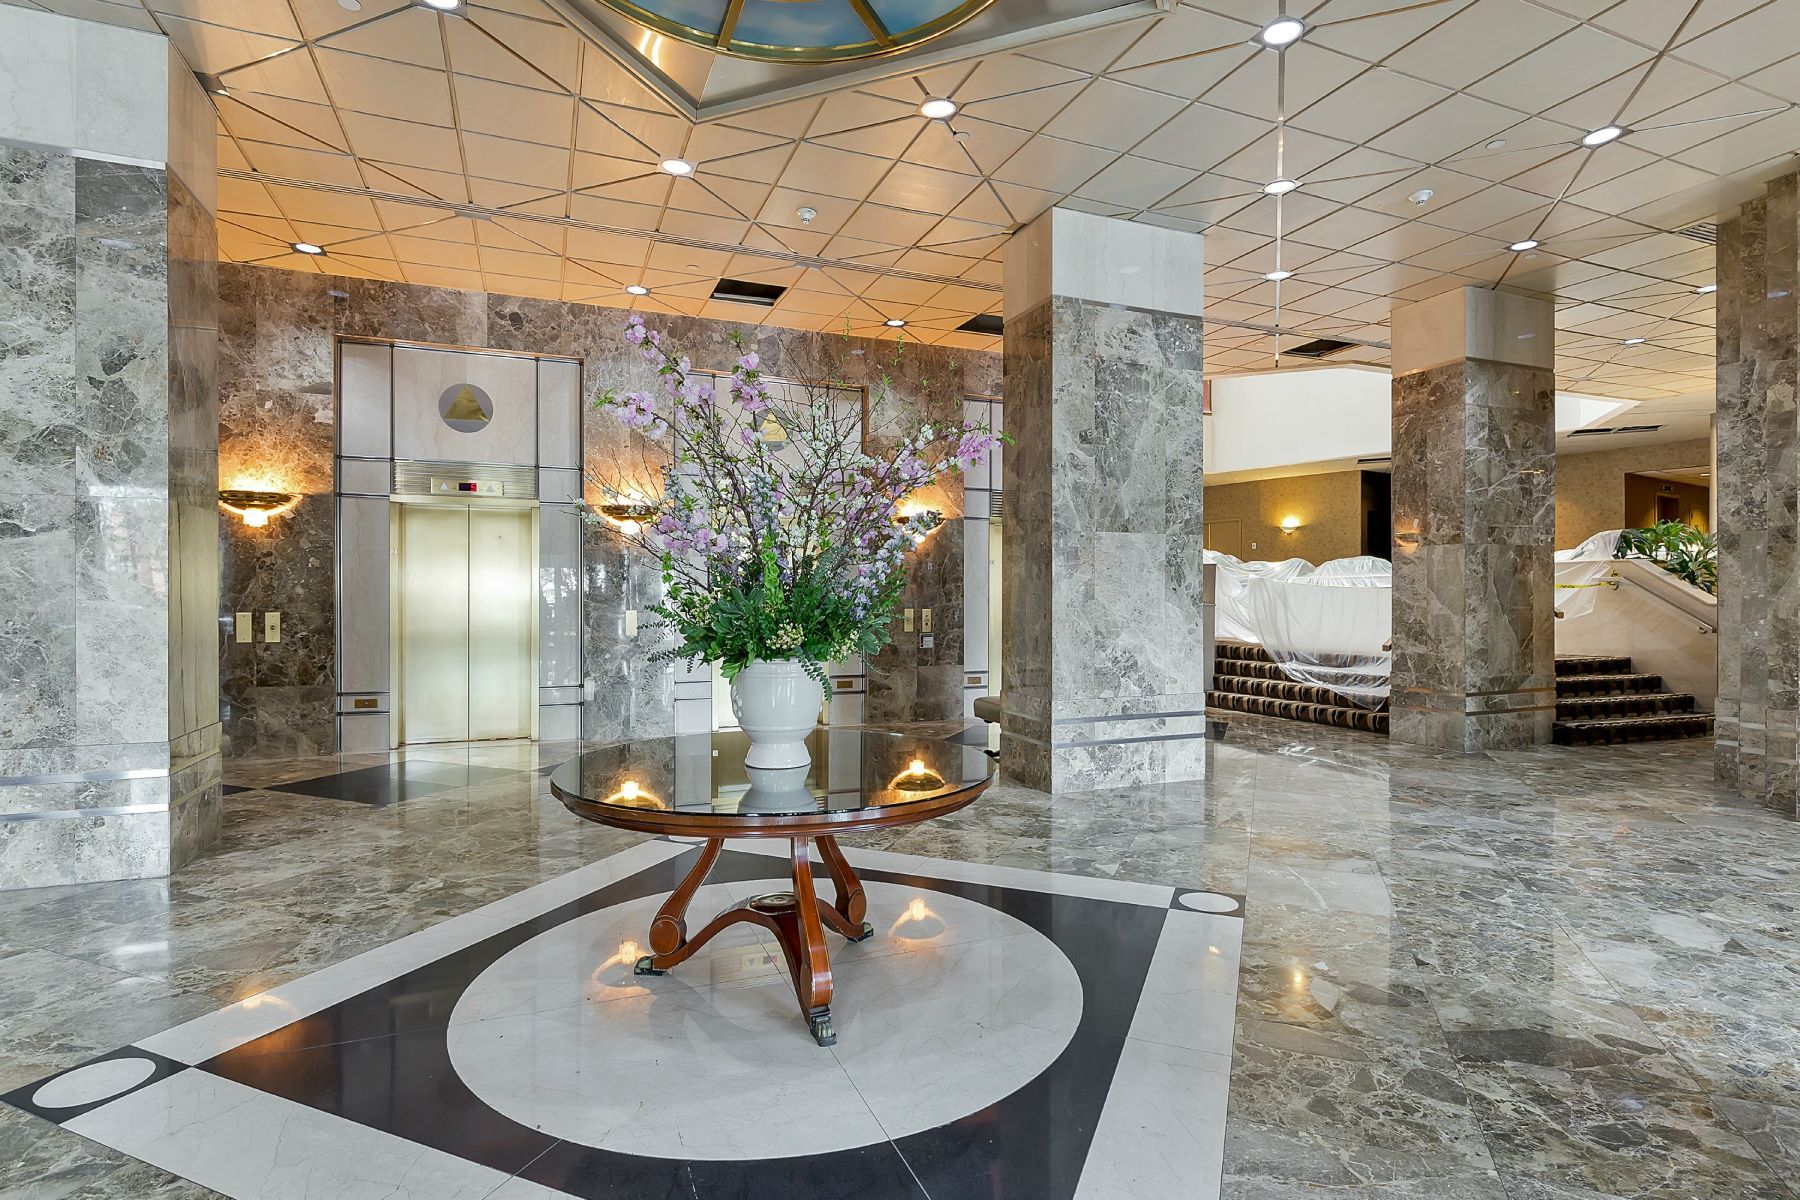 Apartment for Sale at Luxury Living 1512 Palisdae Av 9 R Fort Lee, New Jersey, 07024 United States